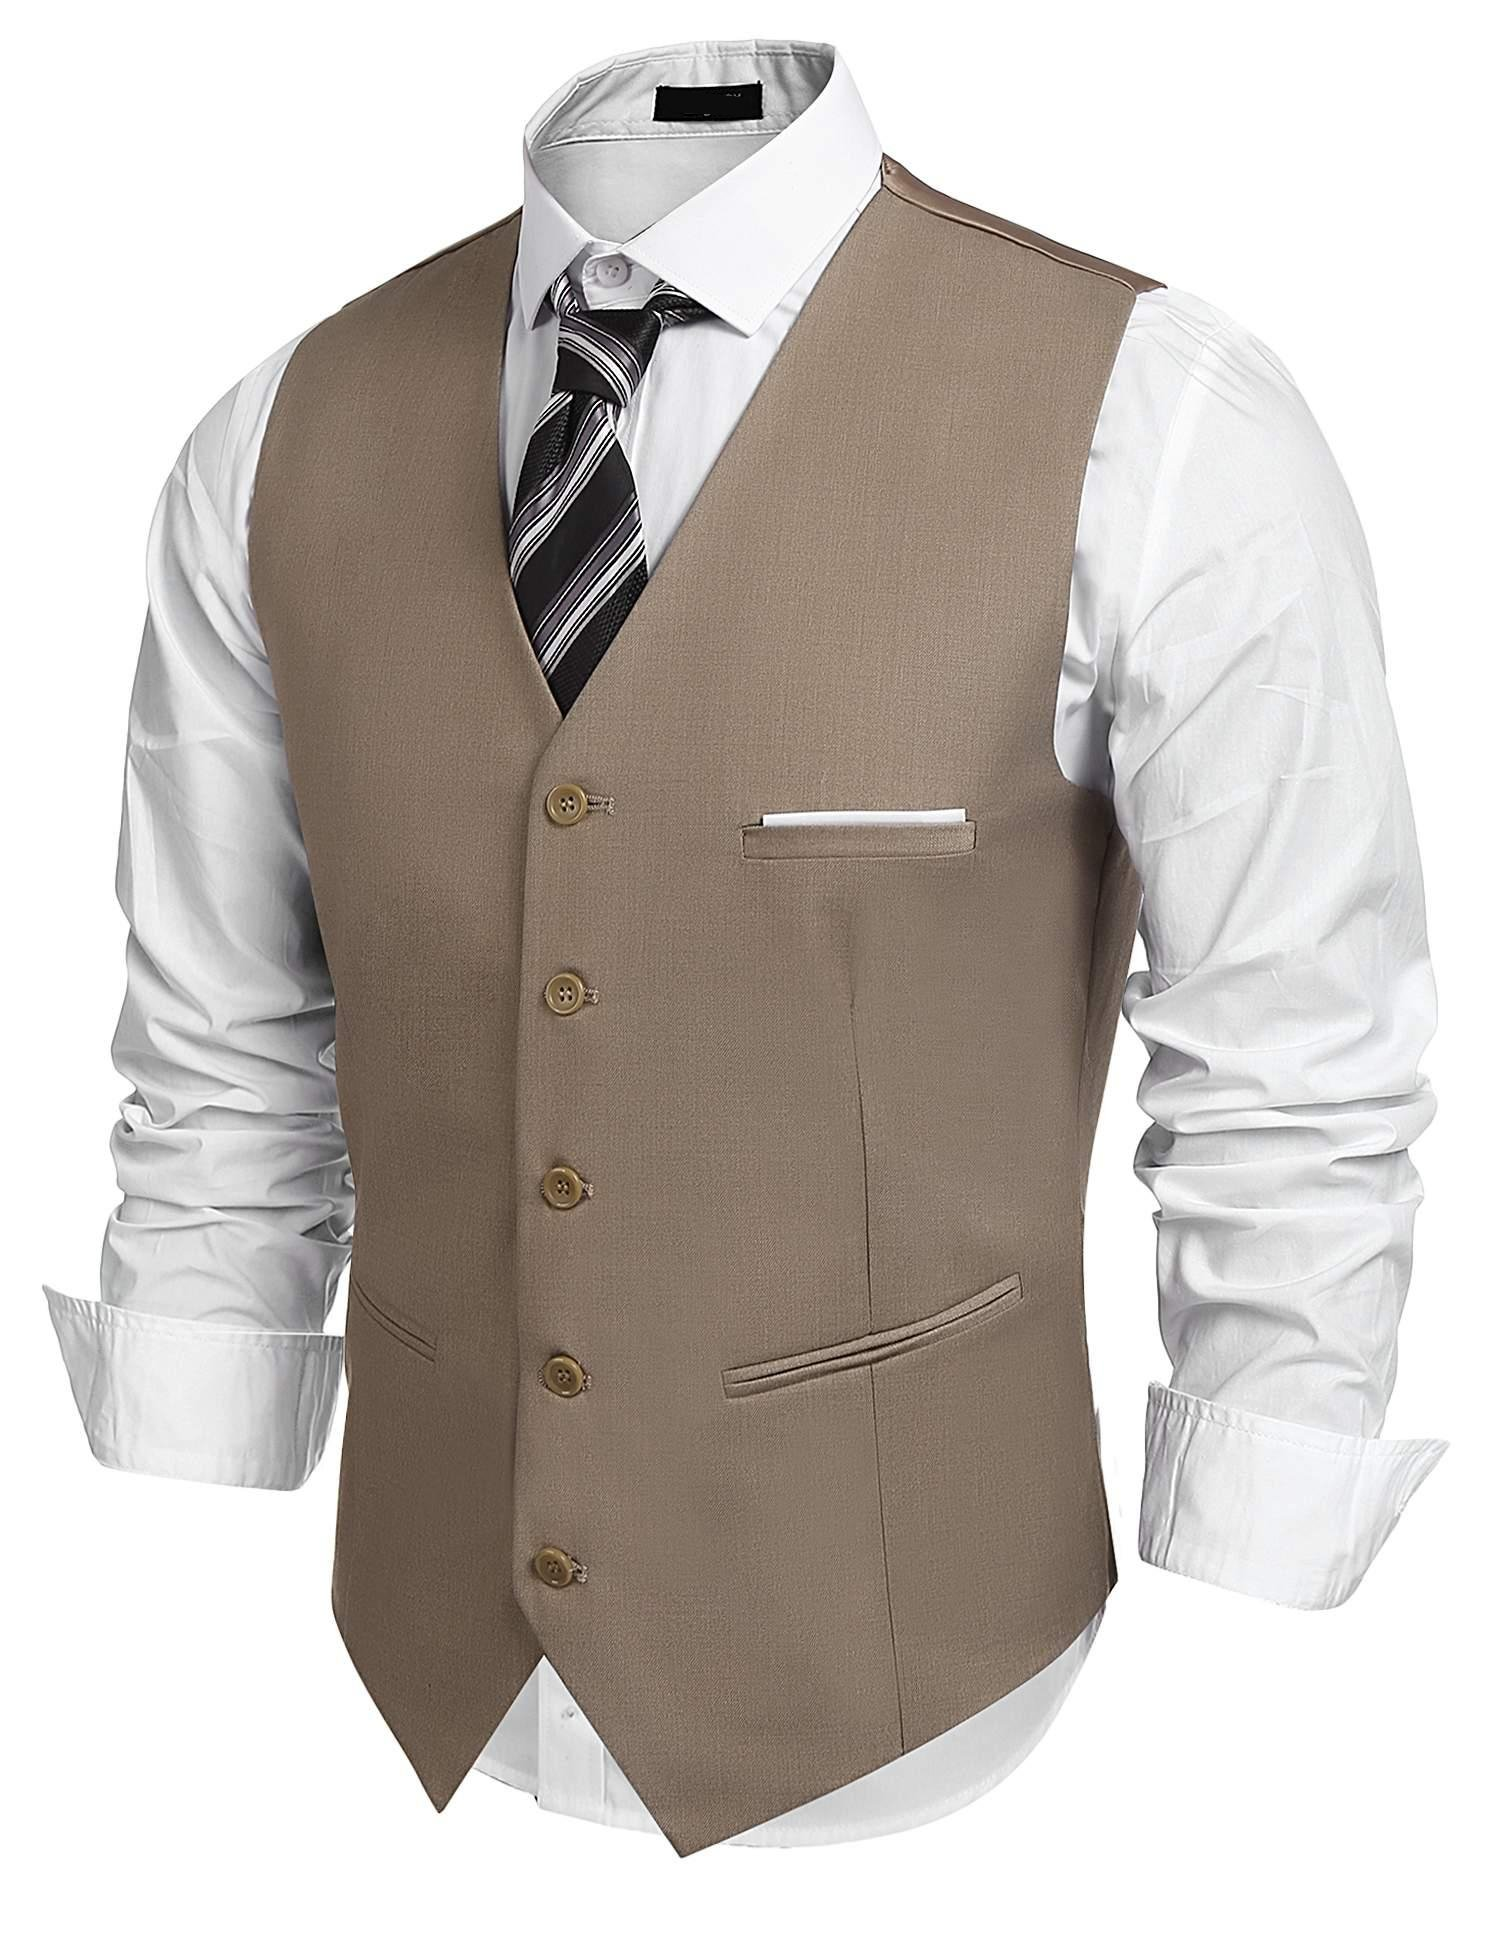 edited Mens Waistcoat Single Breasted Sleeveless Blazer Formal Business Dress Suit Vest